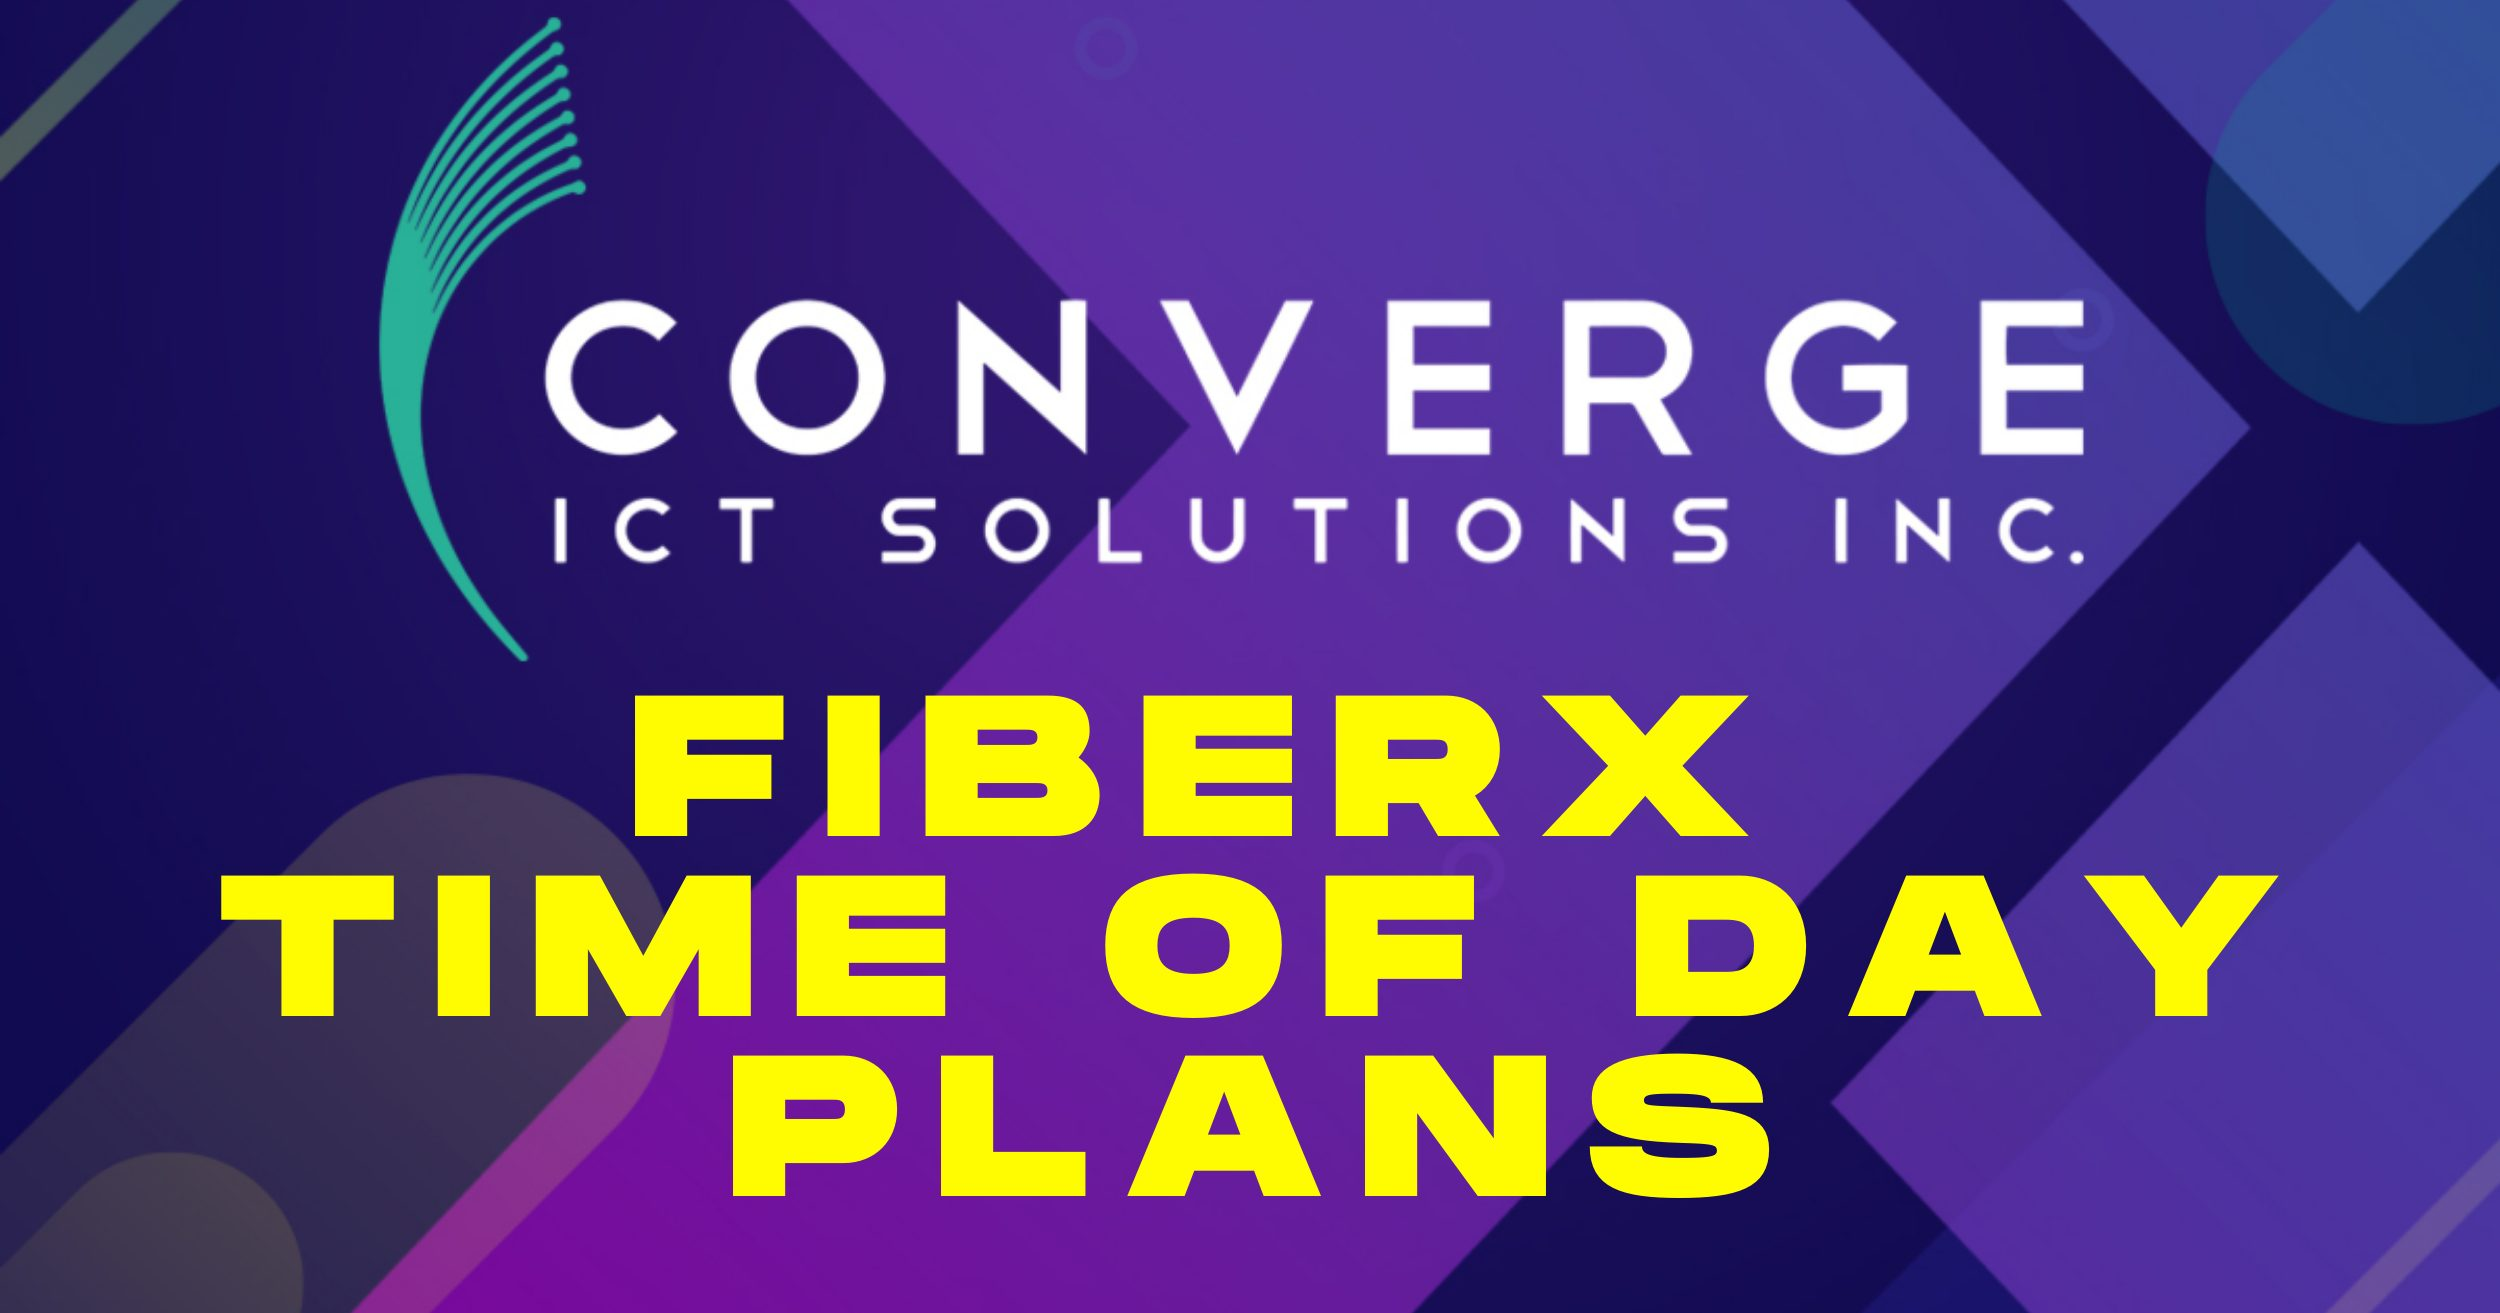 your-guide-to-converge-fiberx-time-of-day-plans